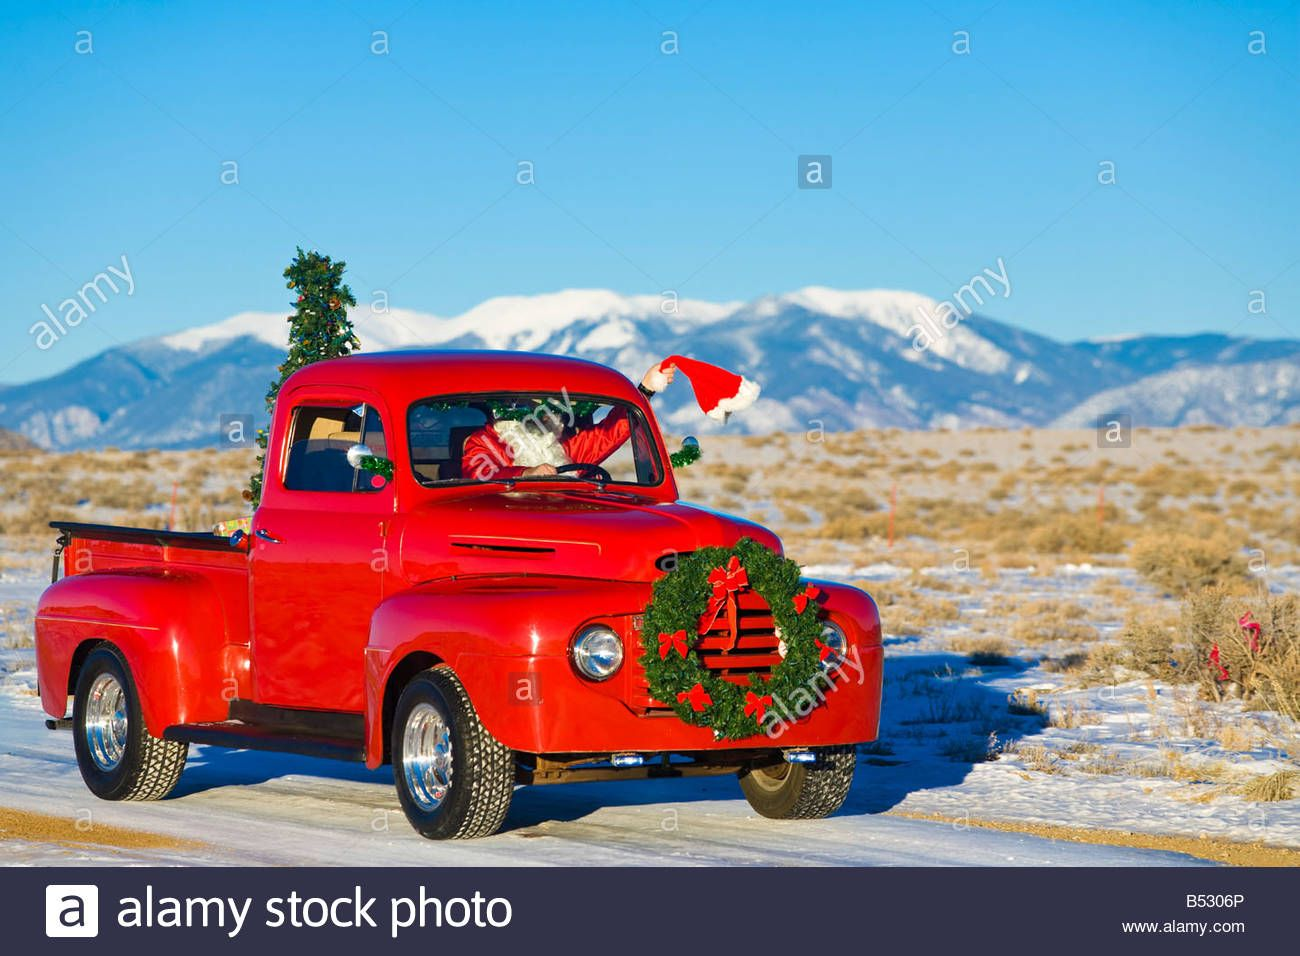 Download this stock image: Santa driving a vintage red Ford pick-up truck down a snowcovered ...